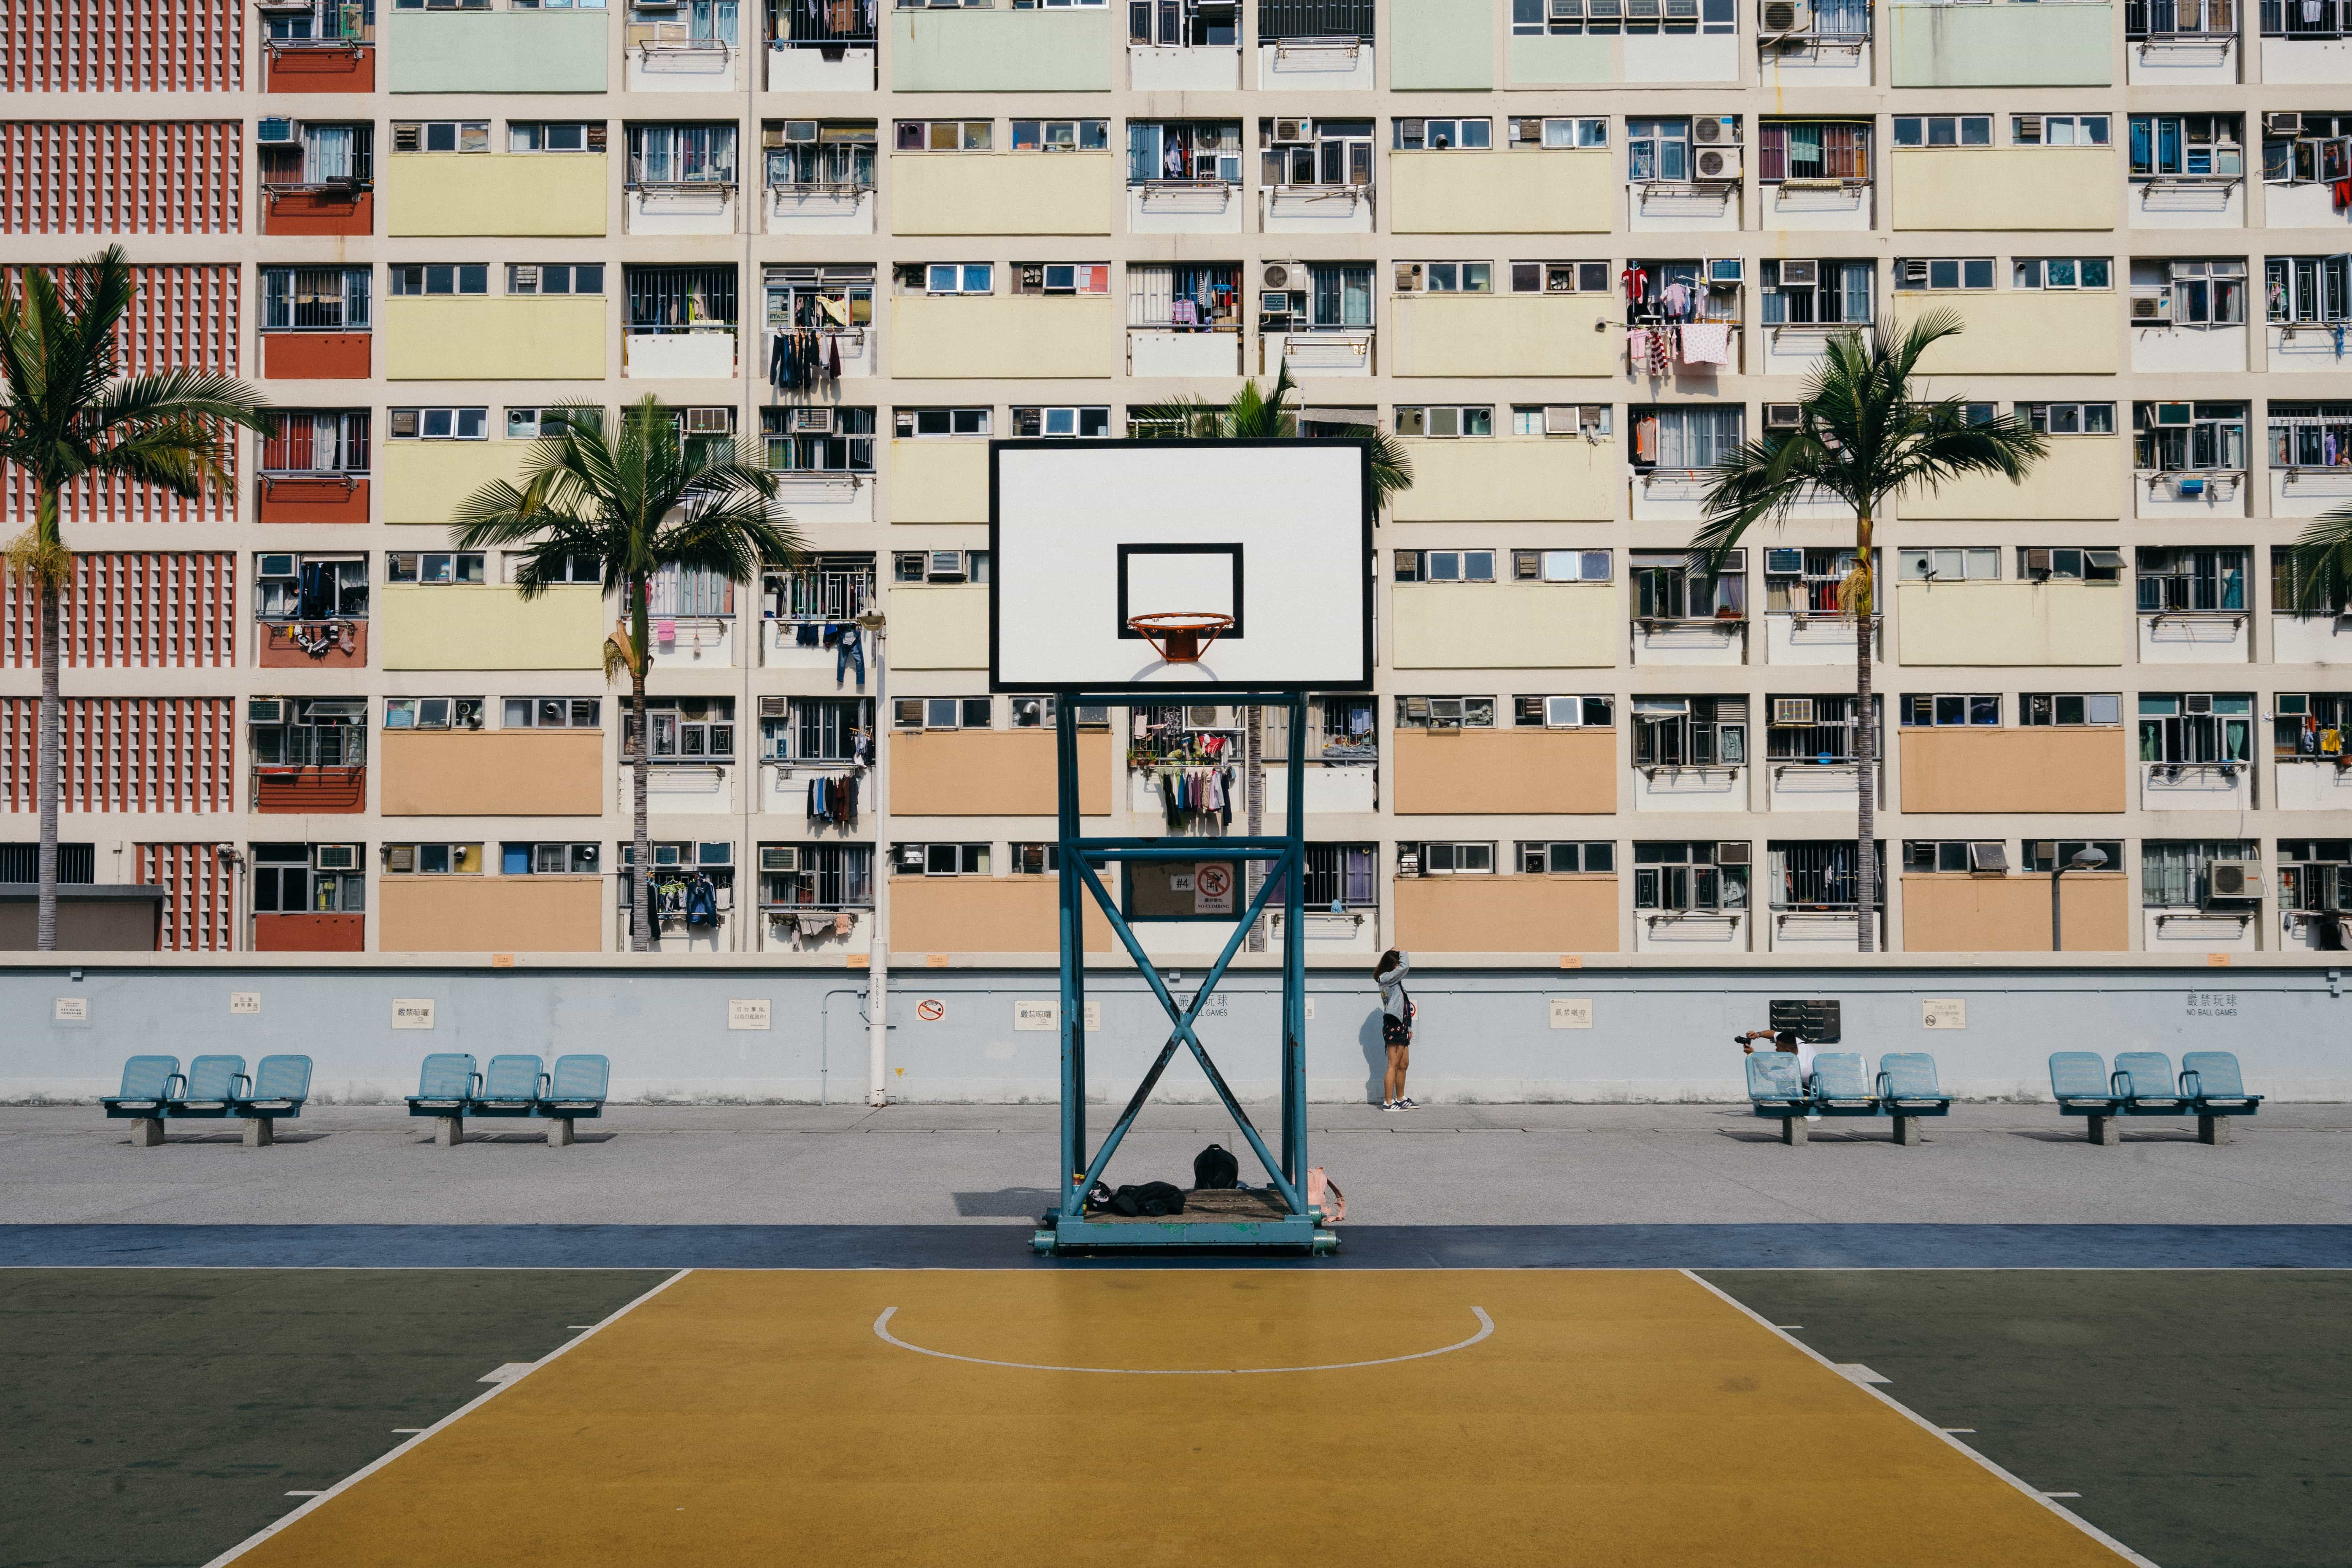 Choi Hung State, Instagrammable places in Hong Kong